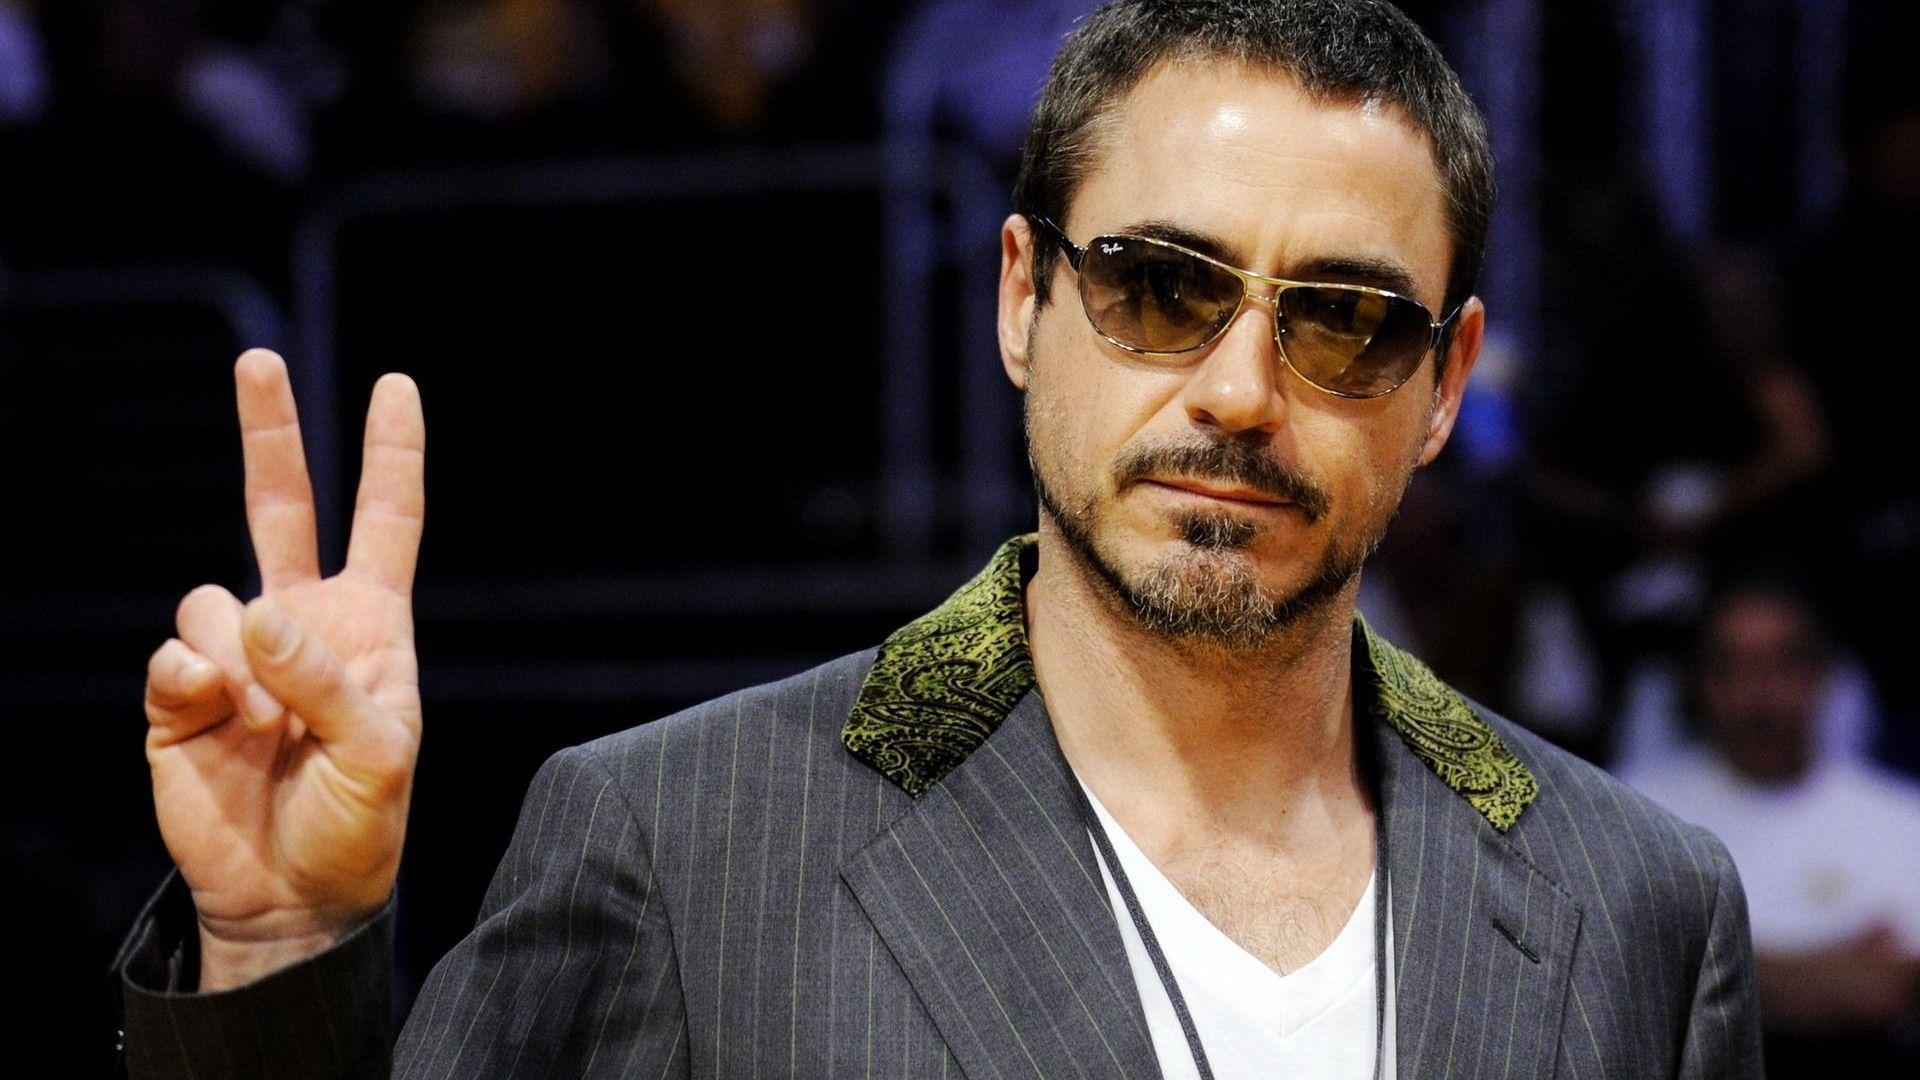 Robert Downey Jr. - Awesome High Quality HD Wallpapers and ...